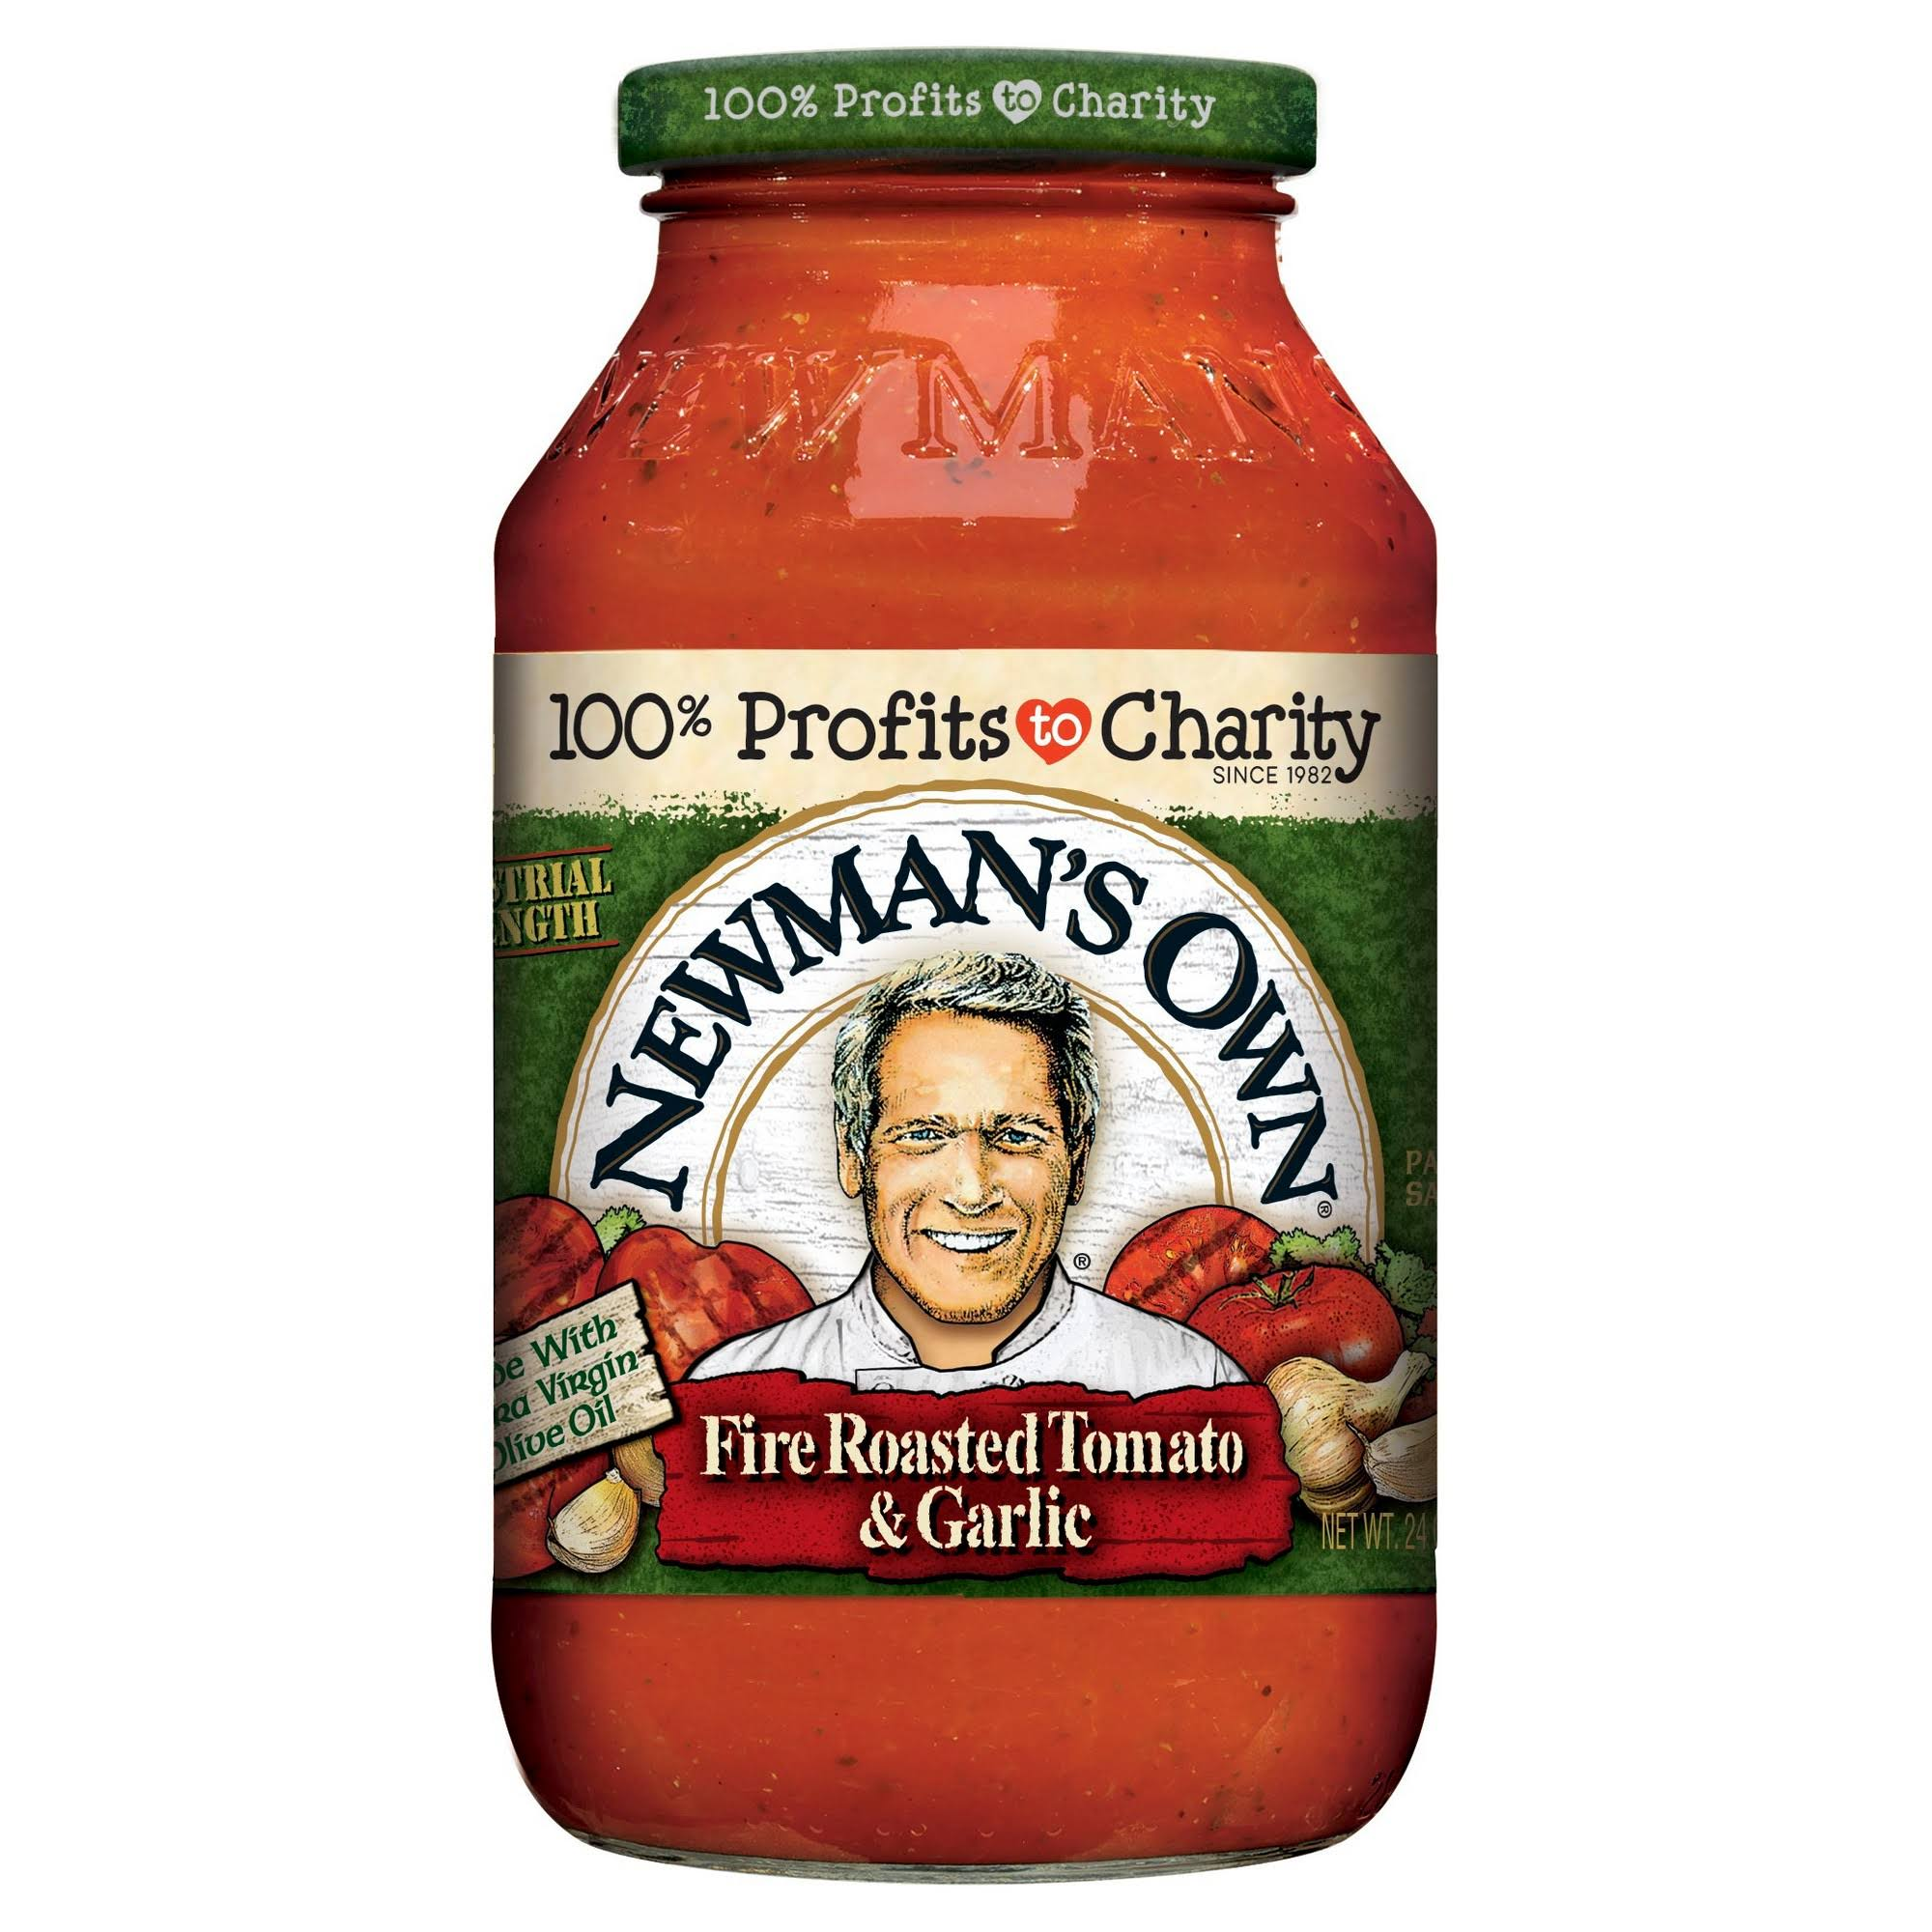 Newman's Own Fire Roasted Tomato and Garlic Pasta Sauce - 24oz